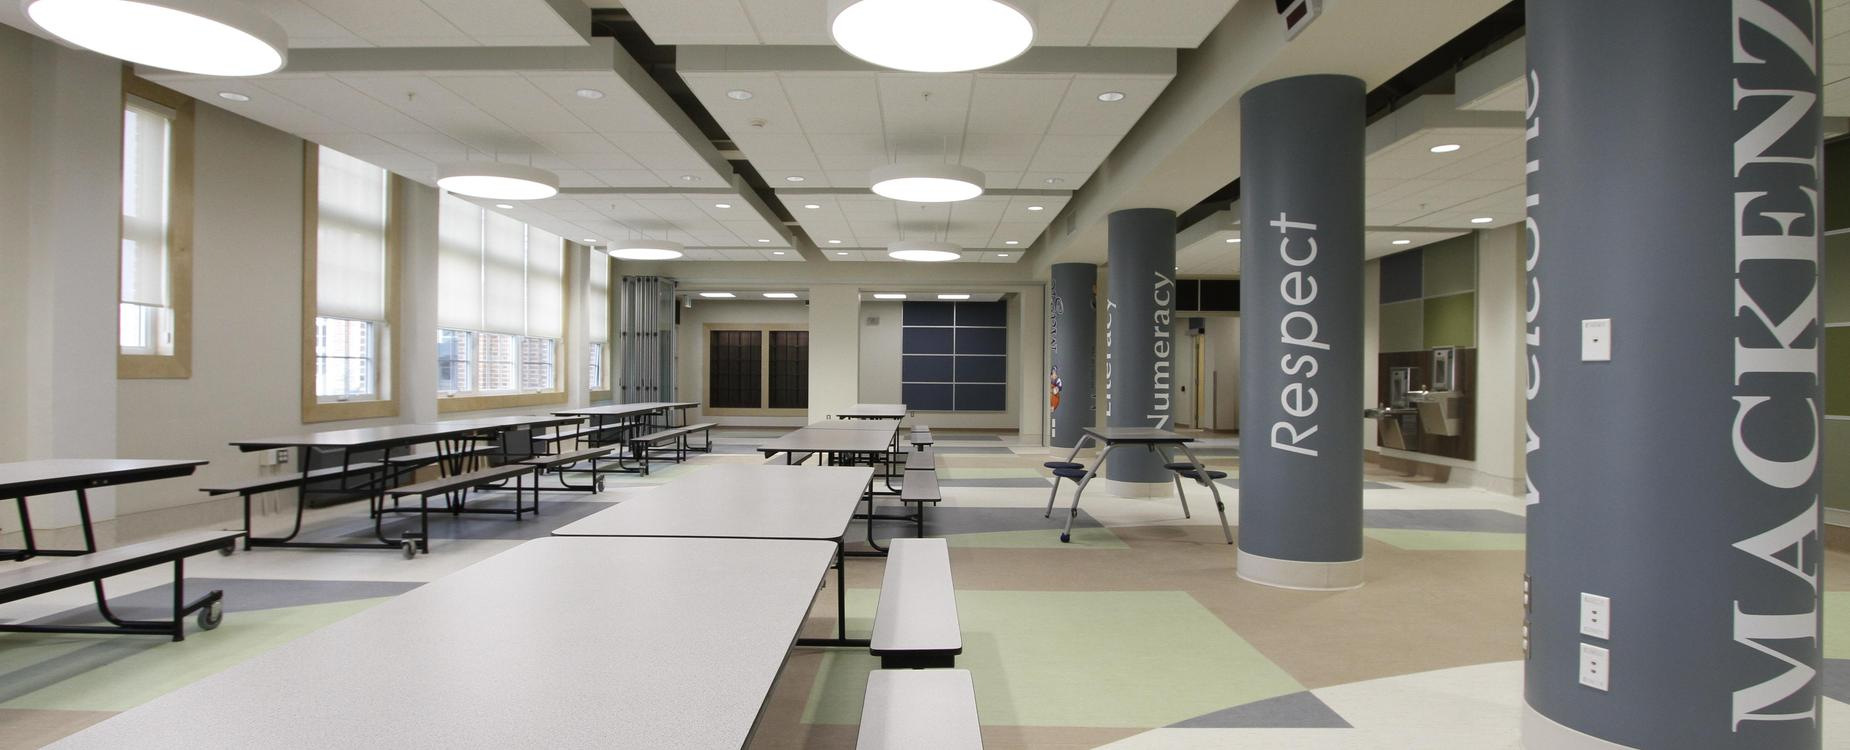 newly renovated foyer in MacKenzie Middle School